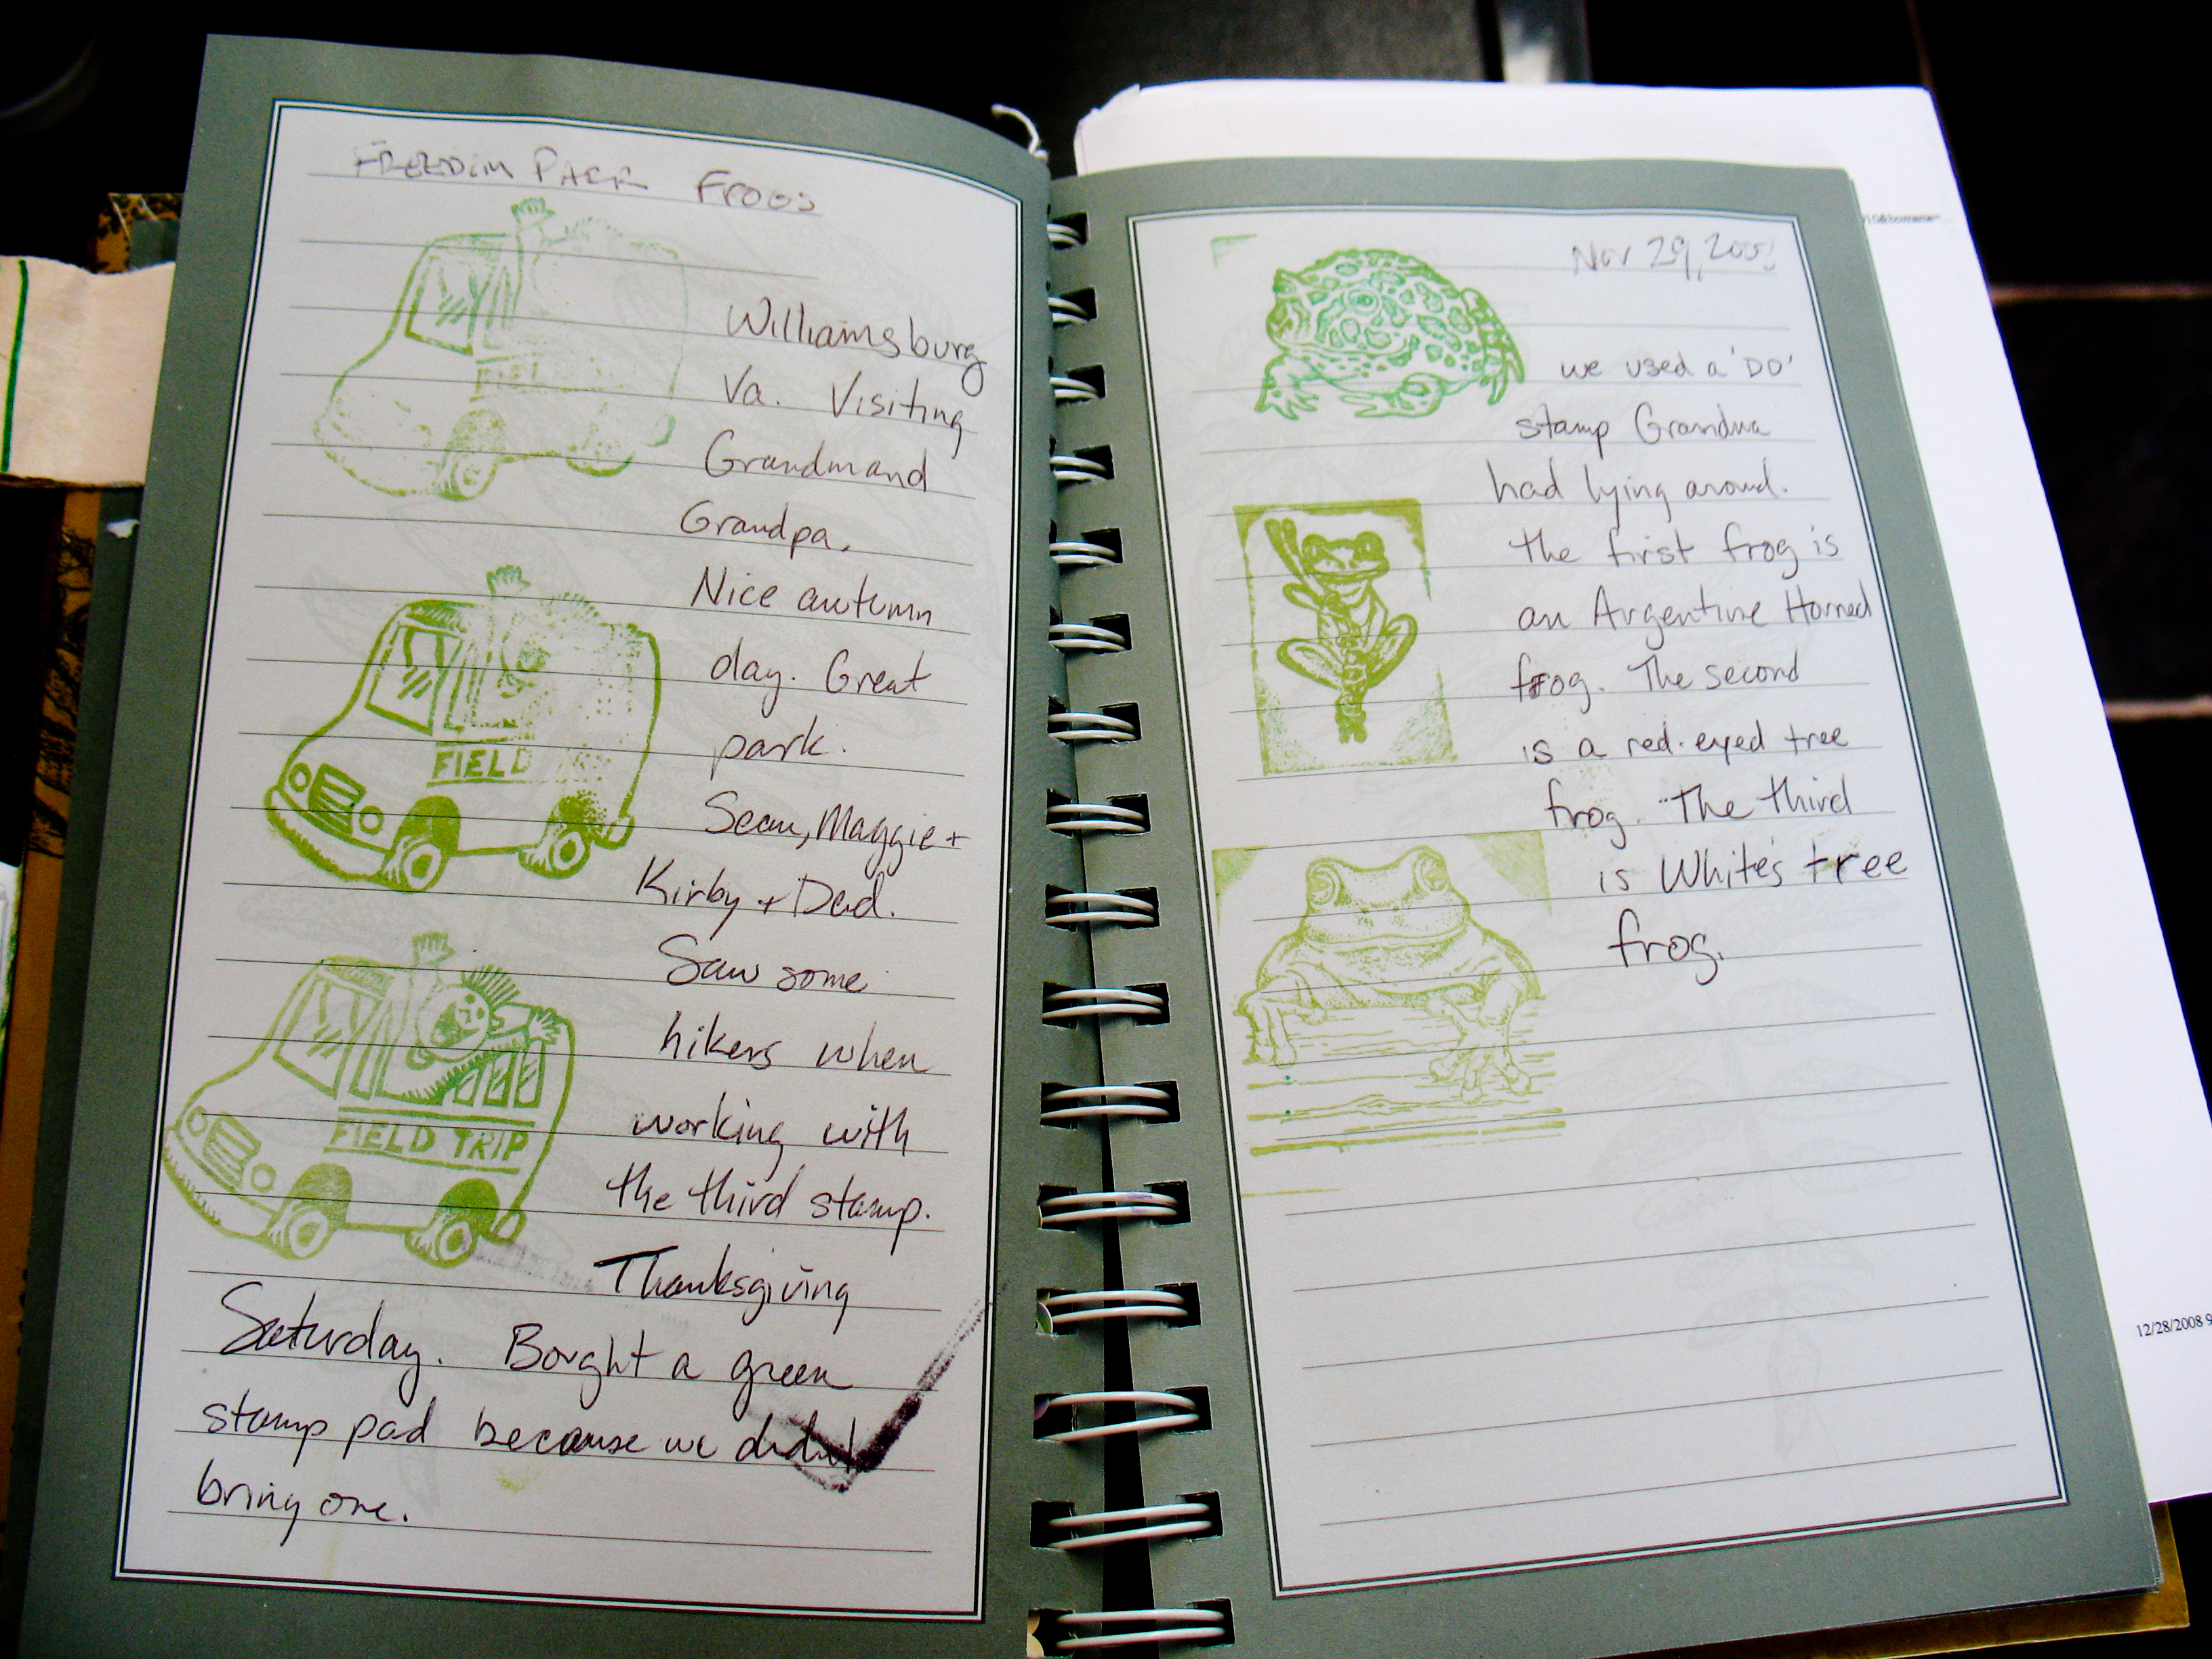 Caption: The Hartigan family's journal is full of stamps and memories of their letterboxing outings in Virginia, Ireland, the Pacific Northwest and other destinations. , Credit: Nancy Greenleese